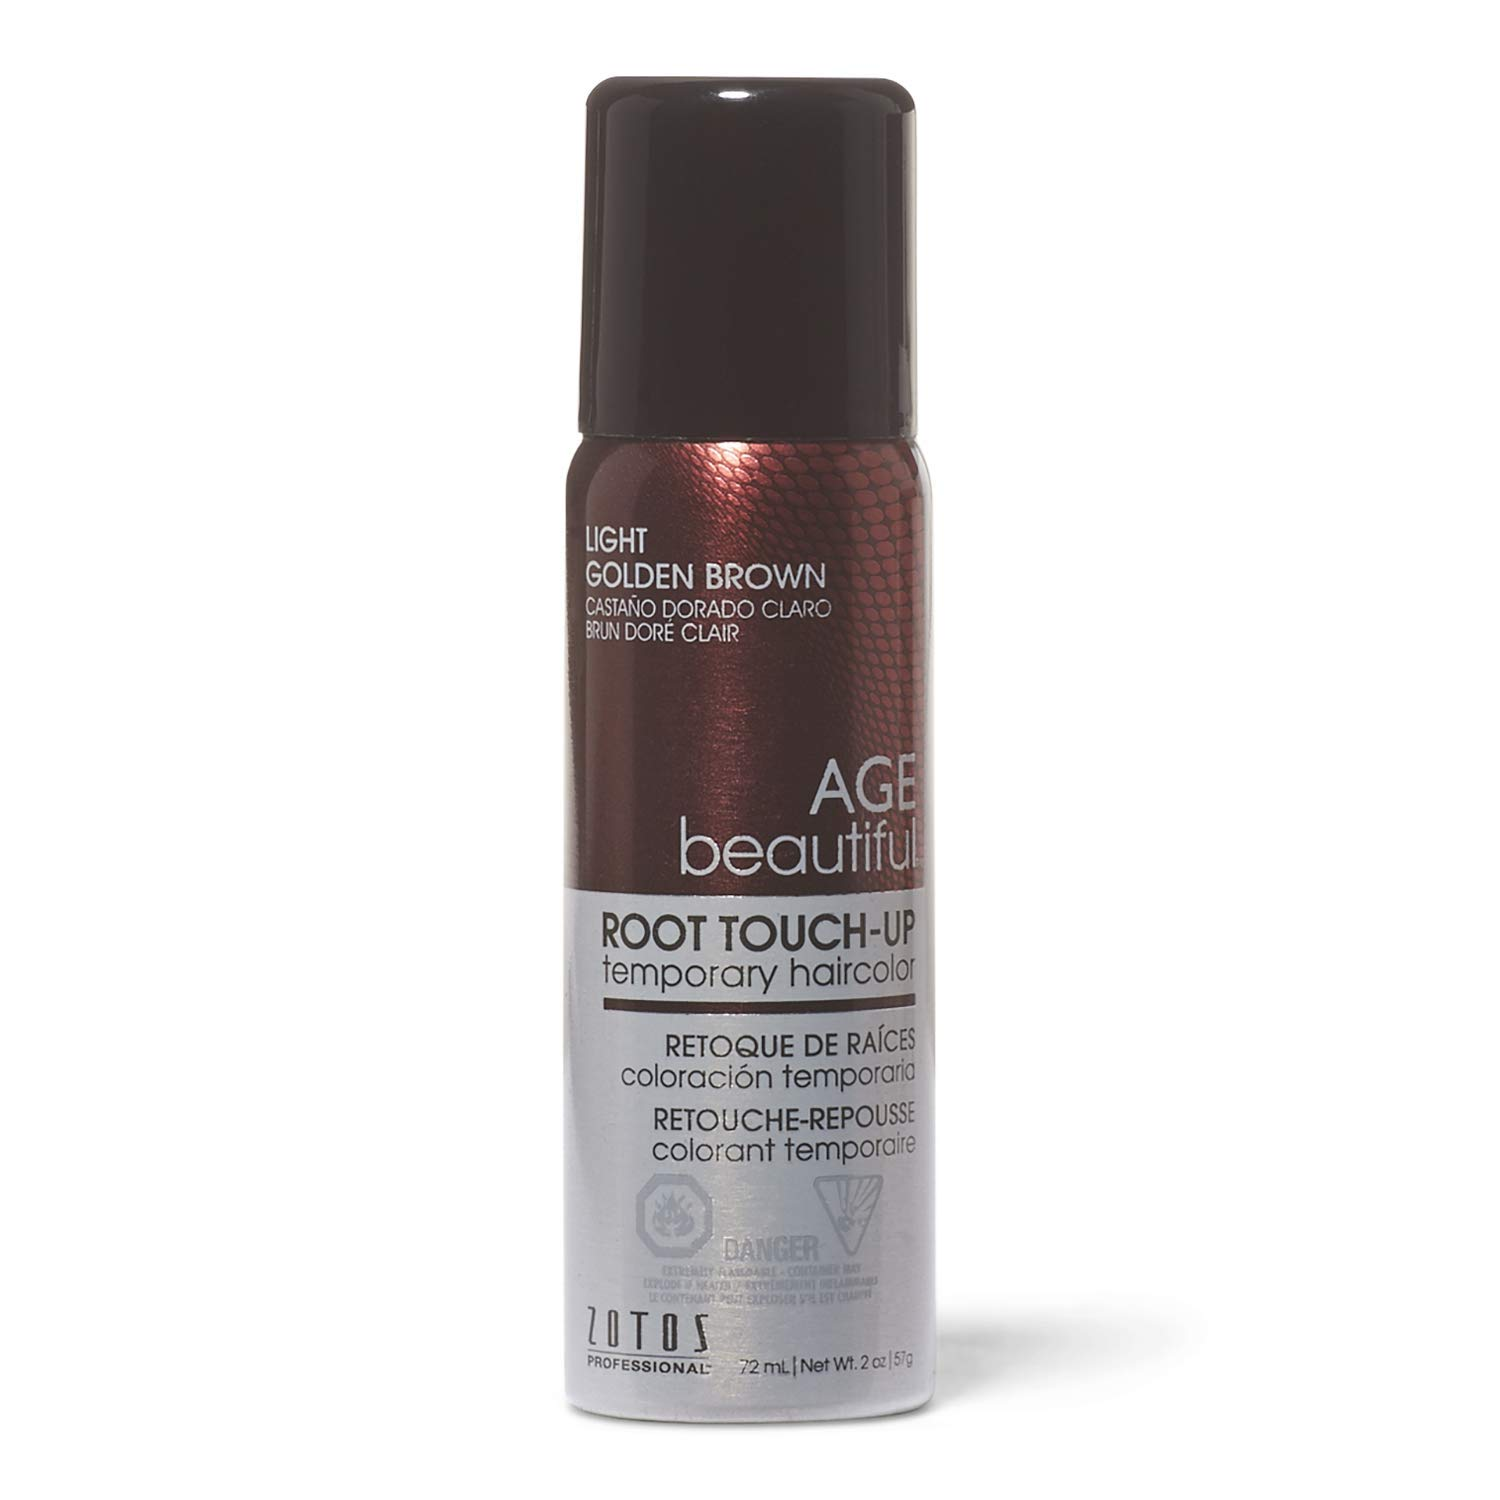 AGEbeautiful Root touch-up, light golden brown, Light Golden Brown, 2 Ounce by AGEbeautiful